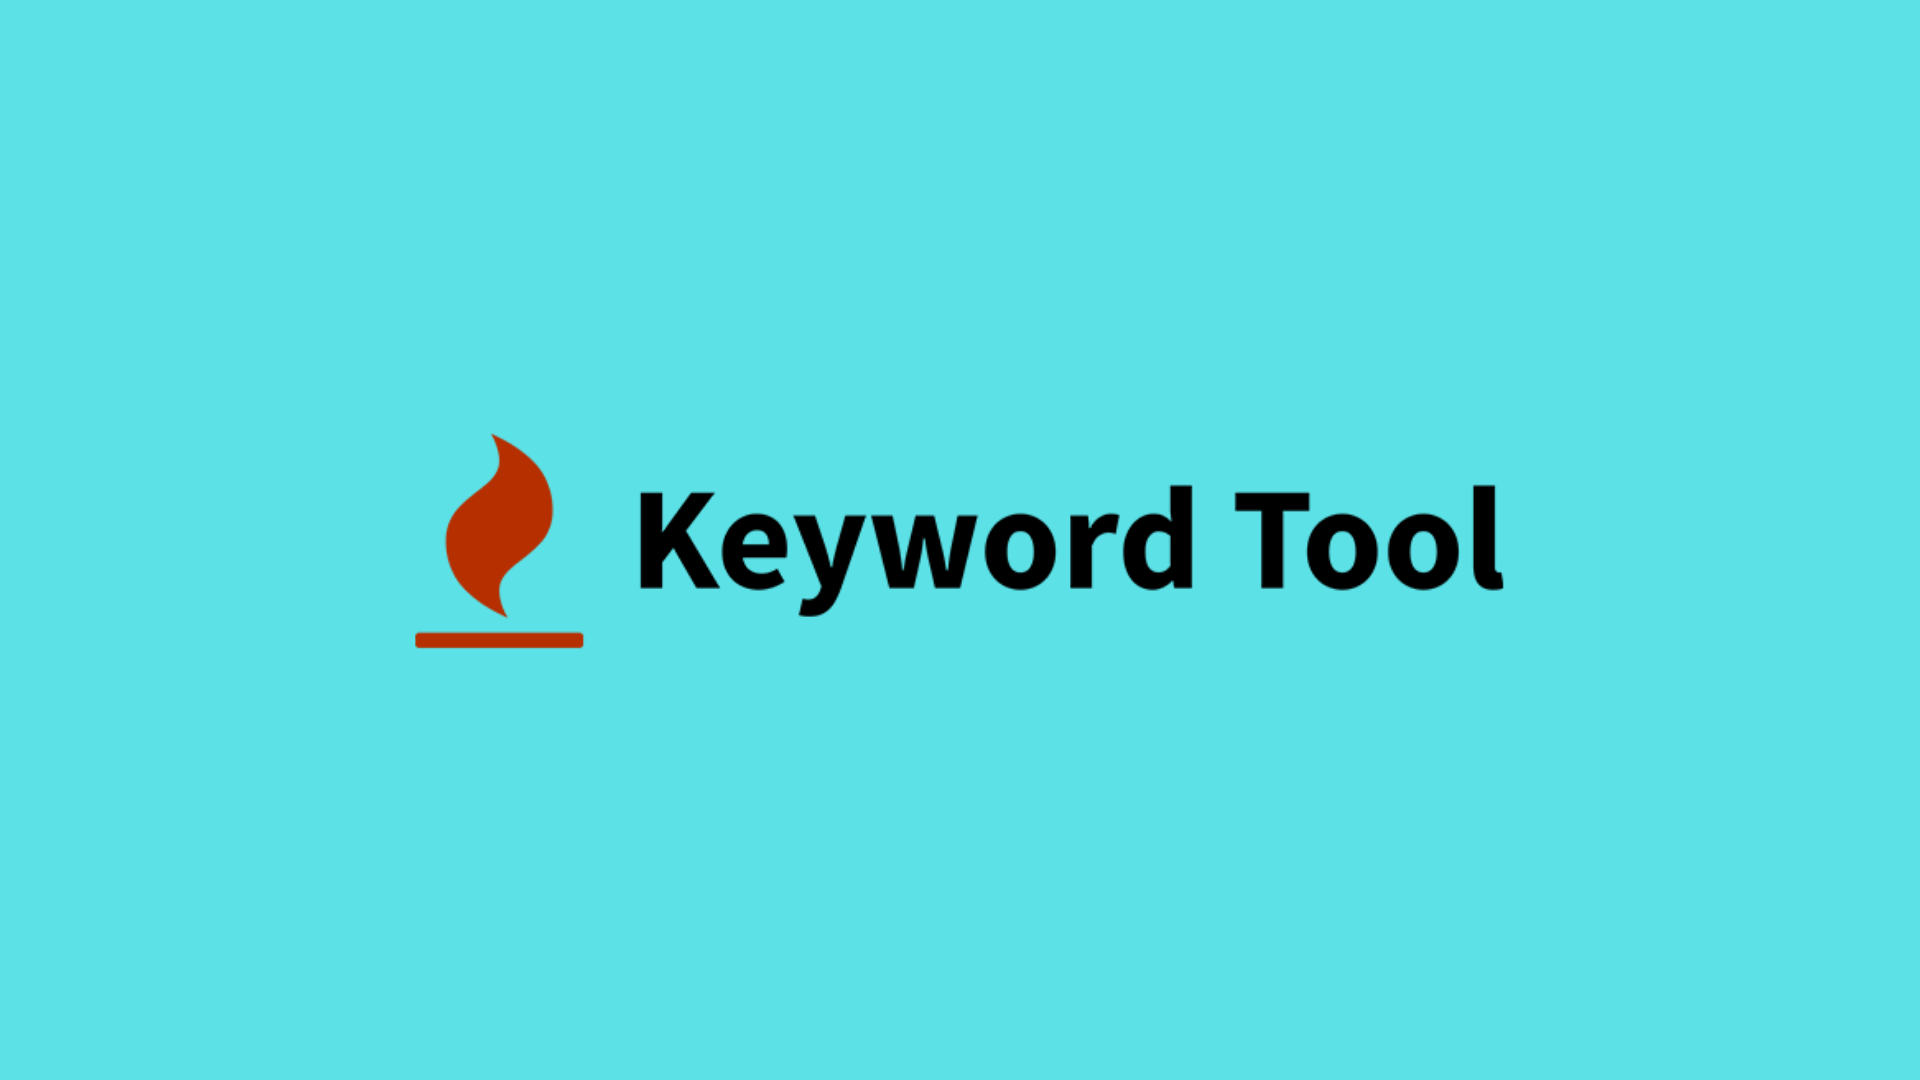 How does Keyword Tool work?